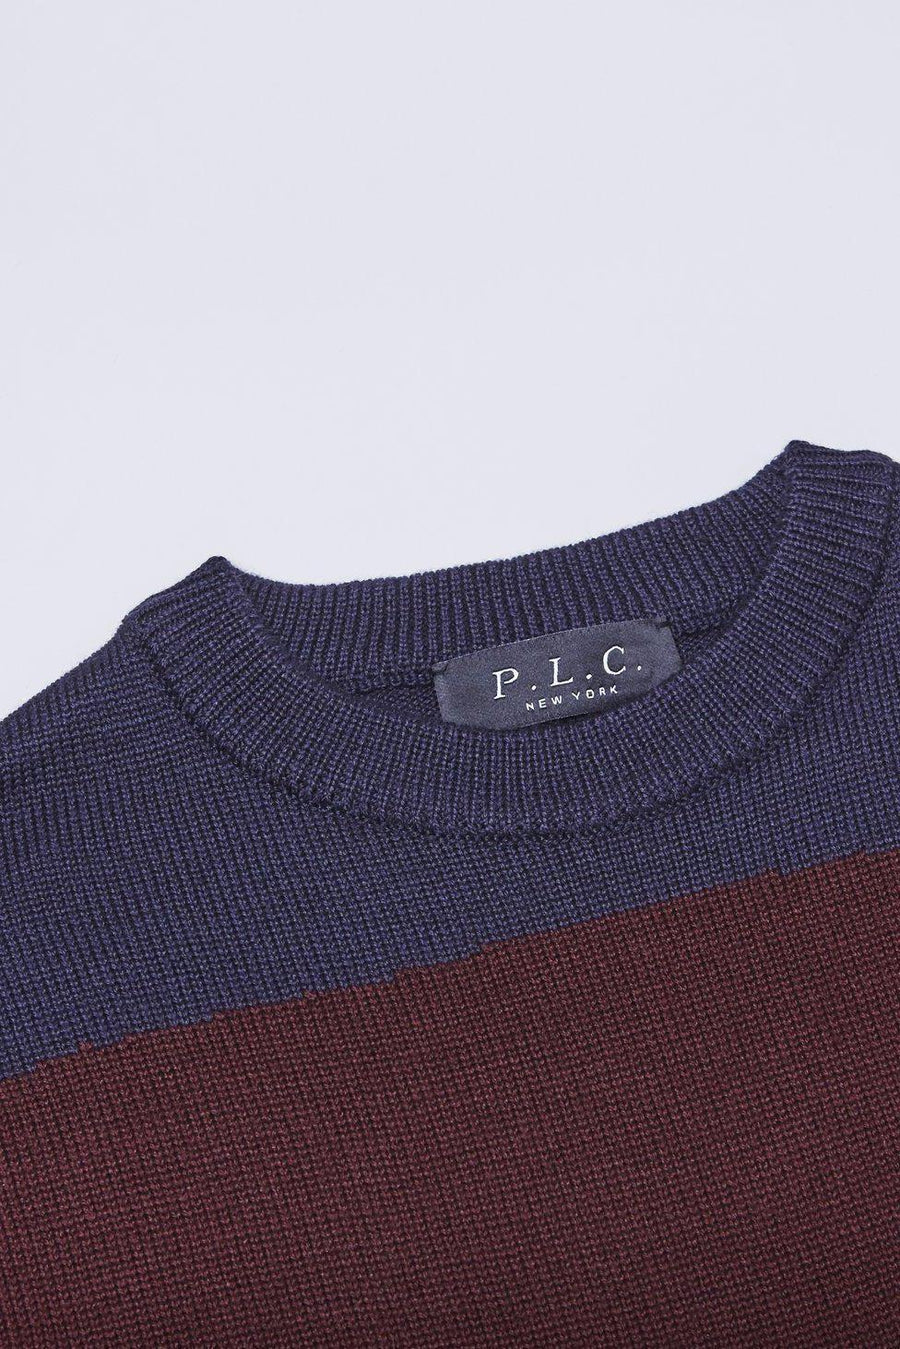 Sweaters Men In Silhouette Wool-Blend Color Block Pullover Project Life Creation Conspiracy New York